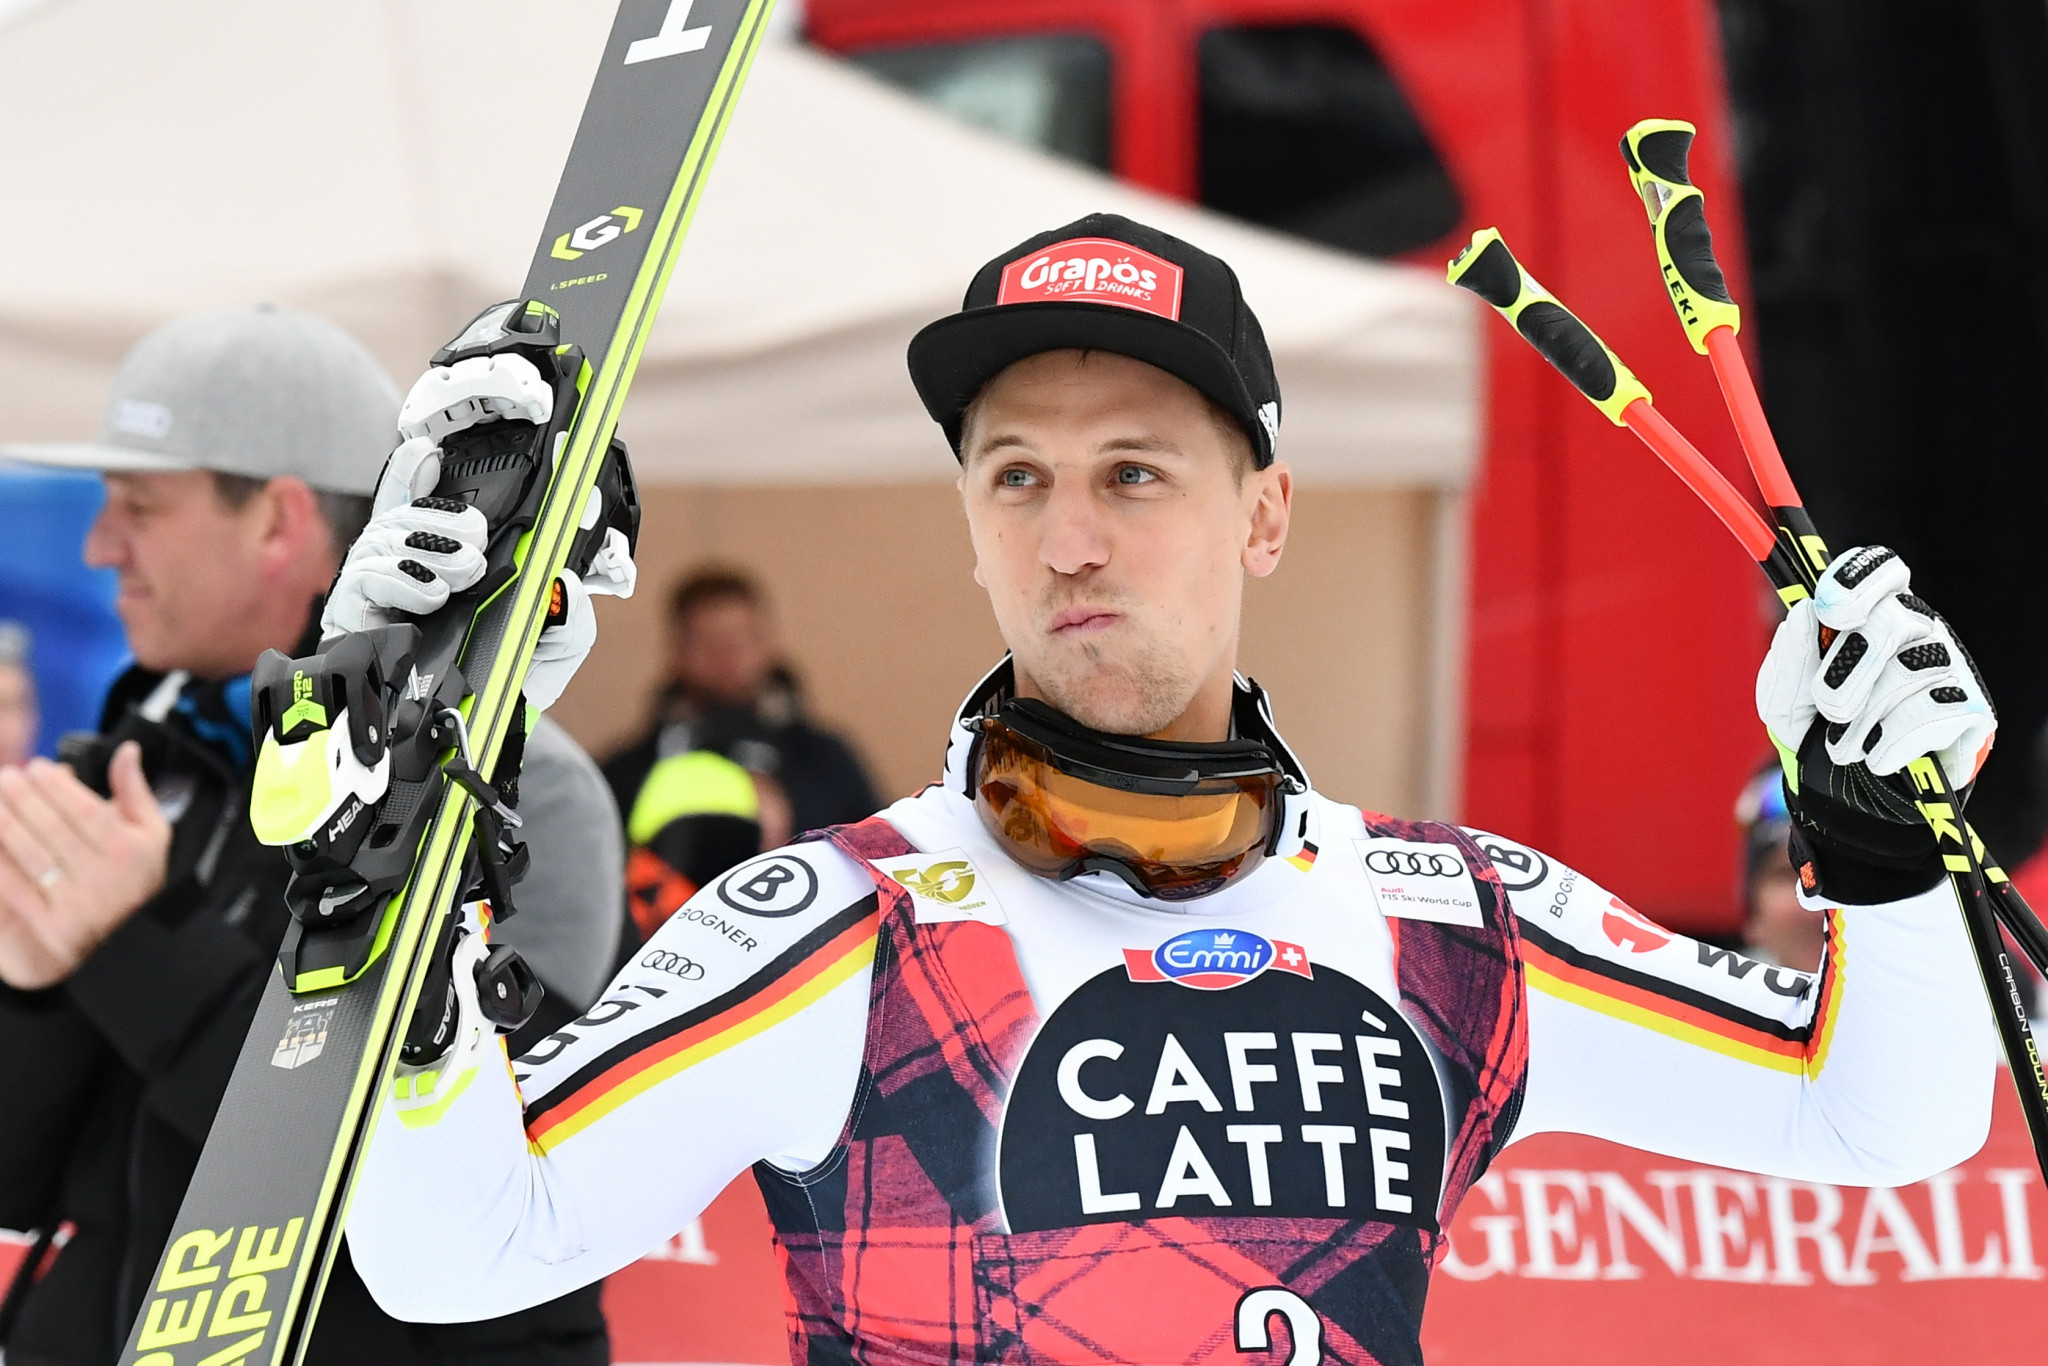 Germany's Ferstl wins weather-affected super-G at FIS Alpine Skiing World Cup in Val Gardena